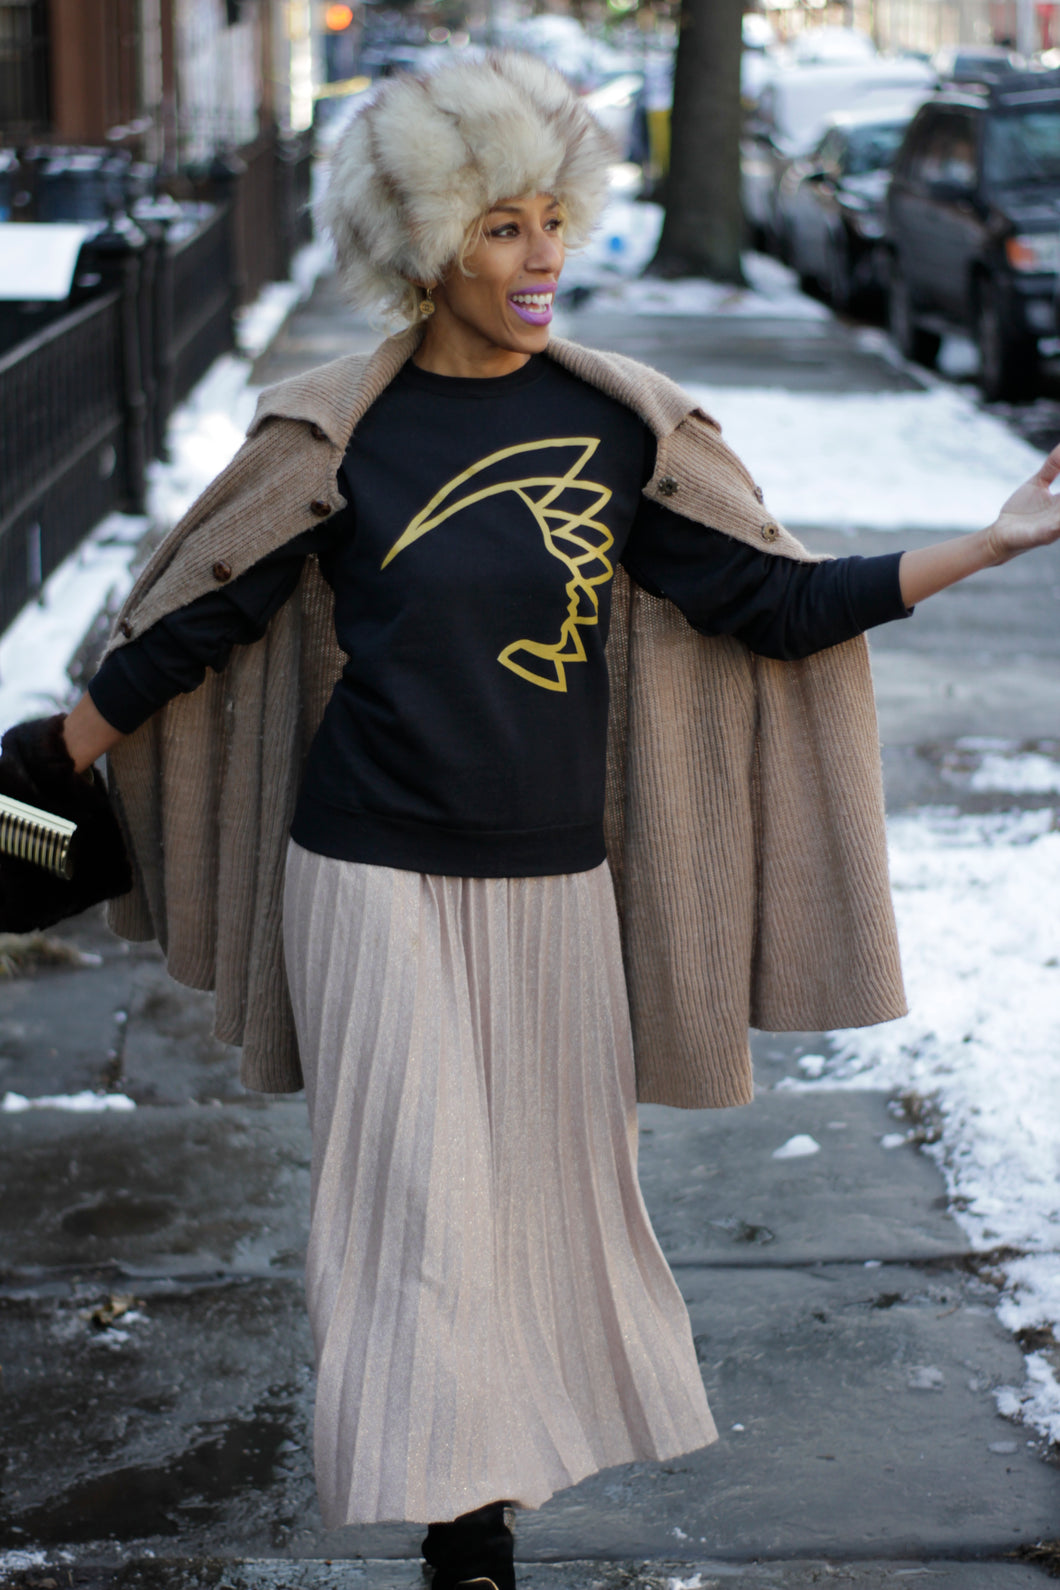 NOK Warrior Crew Neck Sweatshirt in Noir/Gold.